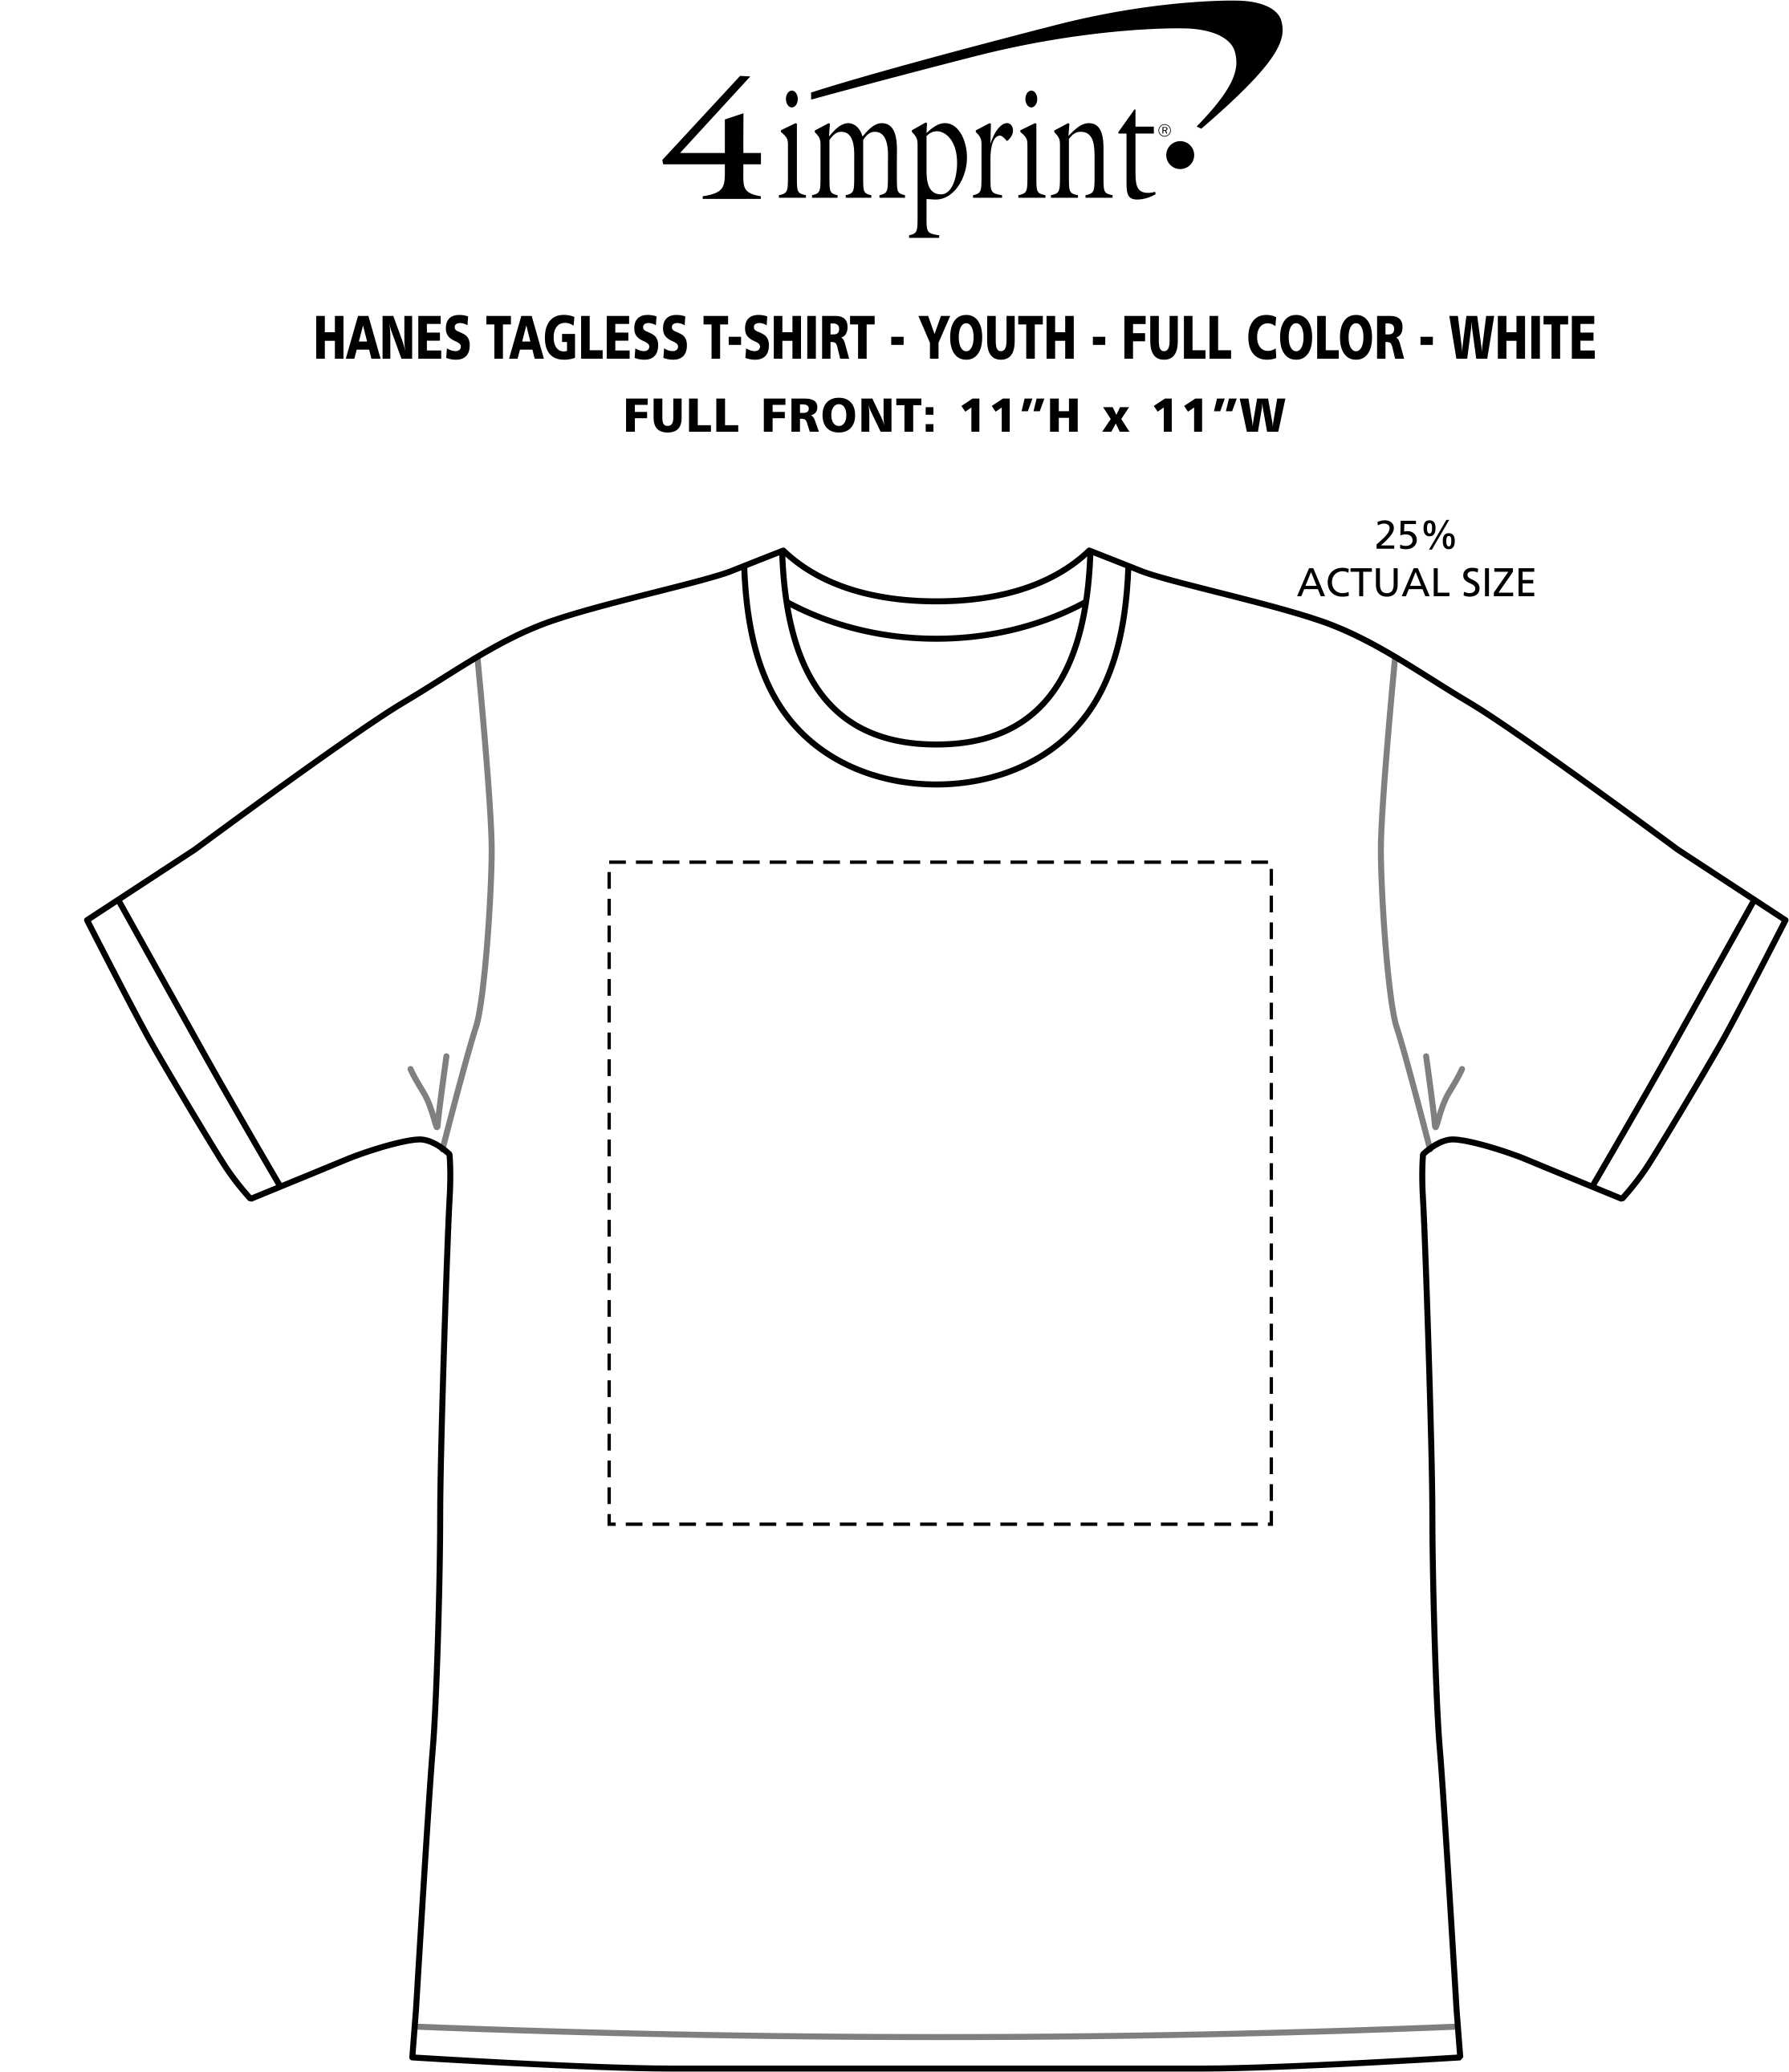 Imprint Area of Hanes Authentic T-Shirt - Youth - Full Color - White